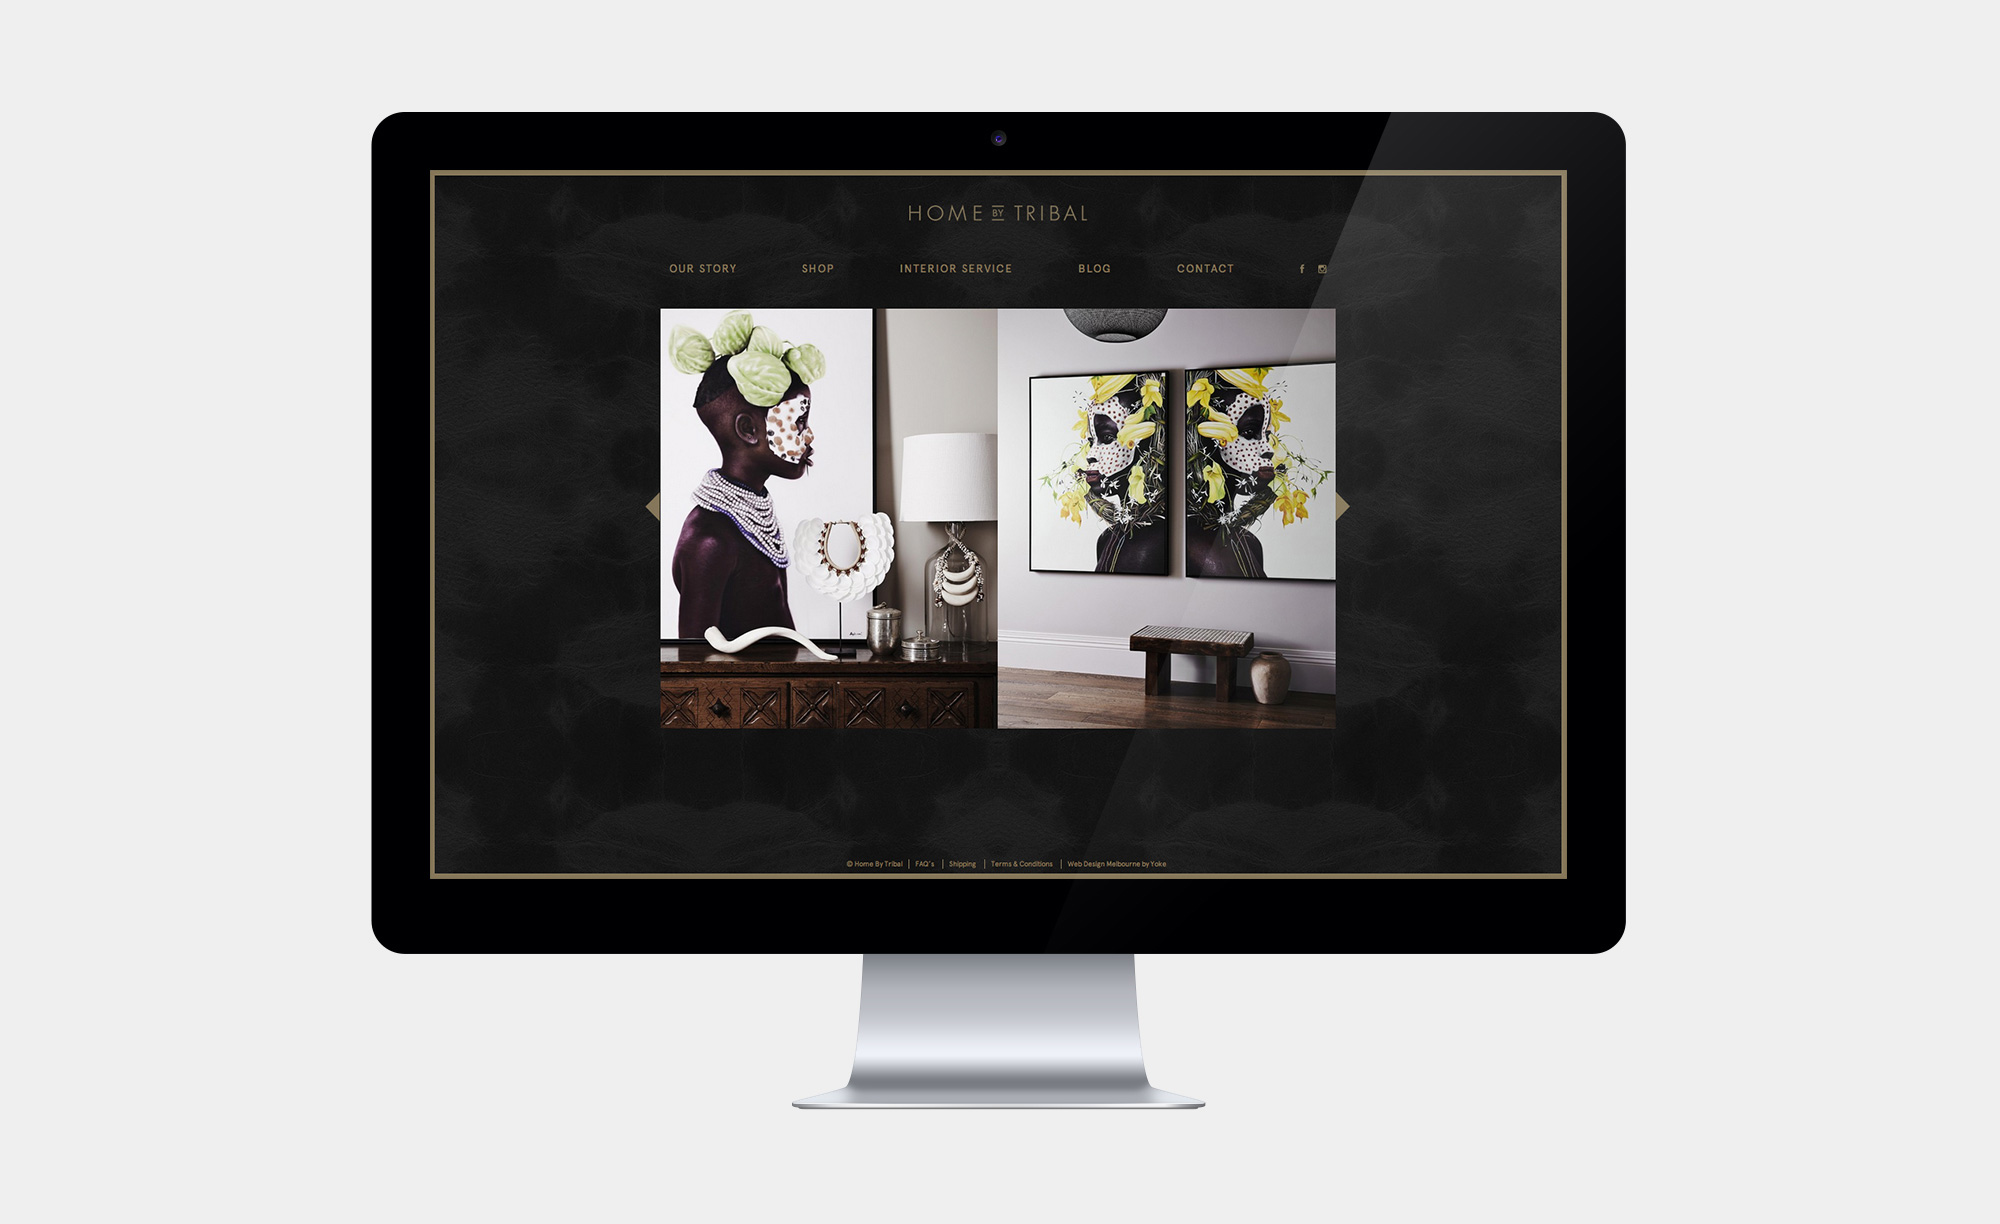 Imagery on the Home by Tribal website